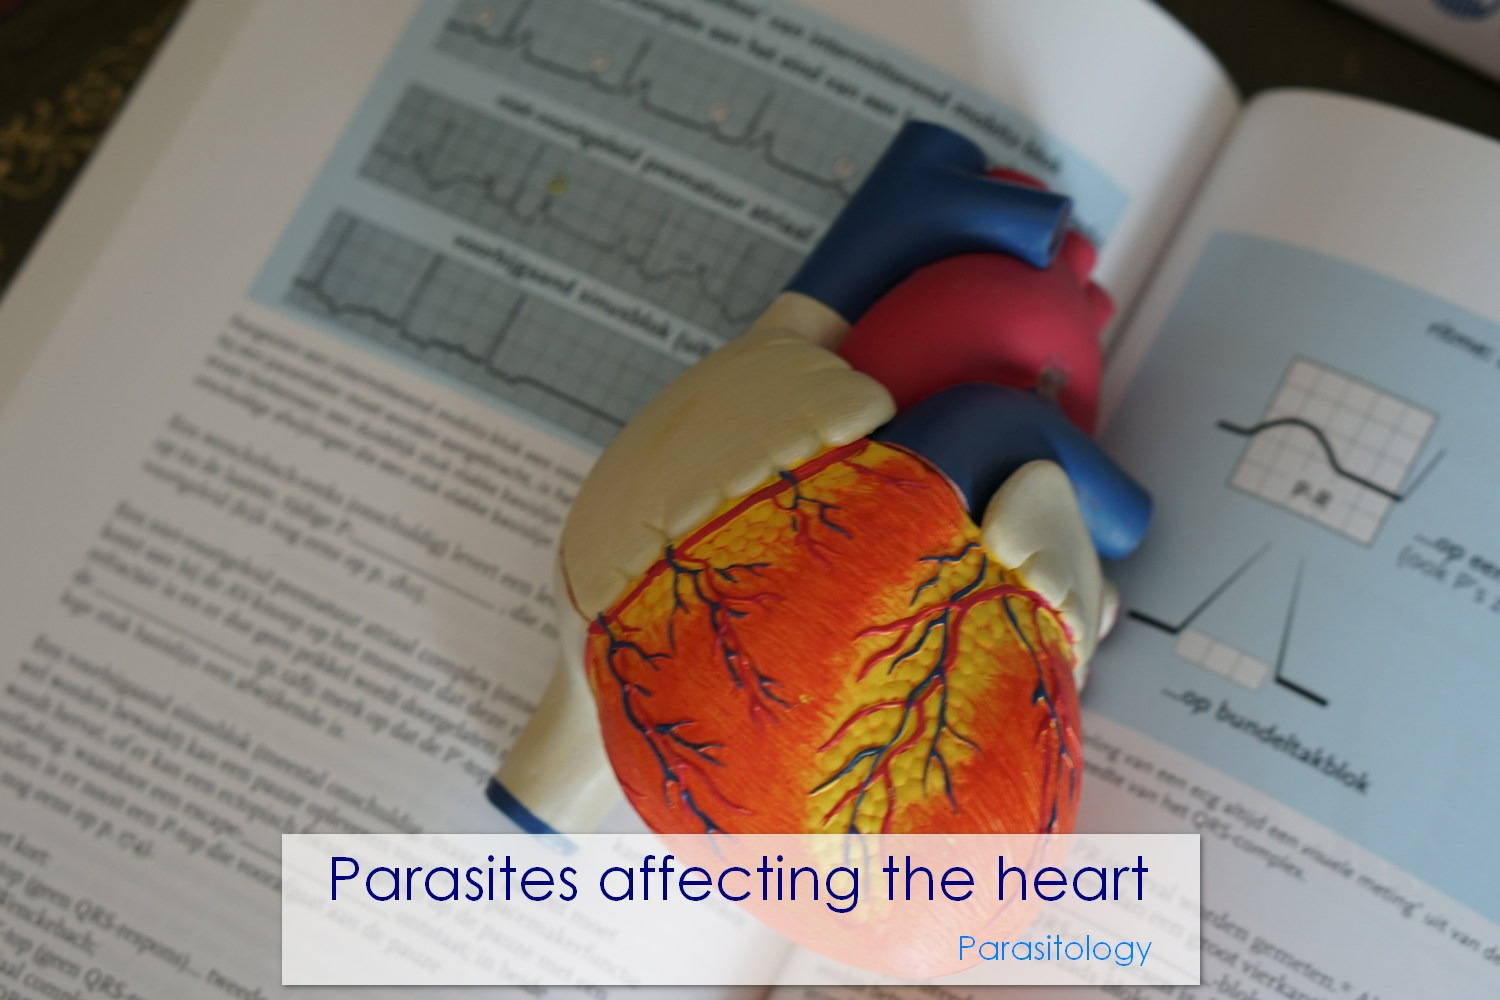 5 Parasites affecting the heart and their manifestations